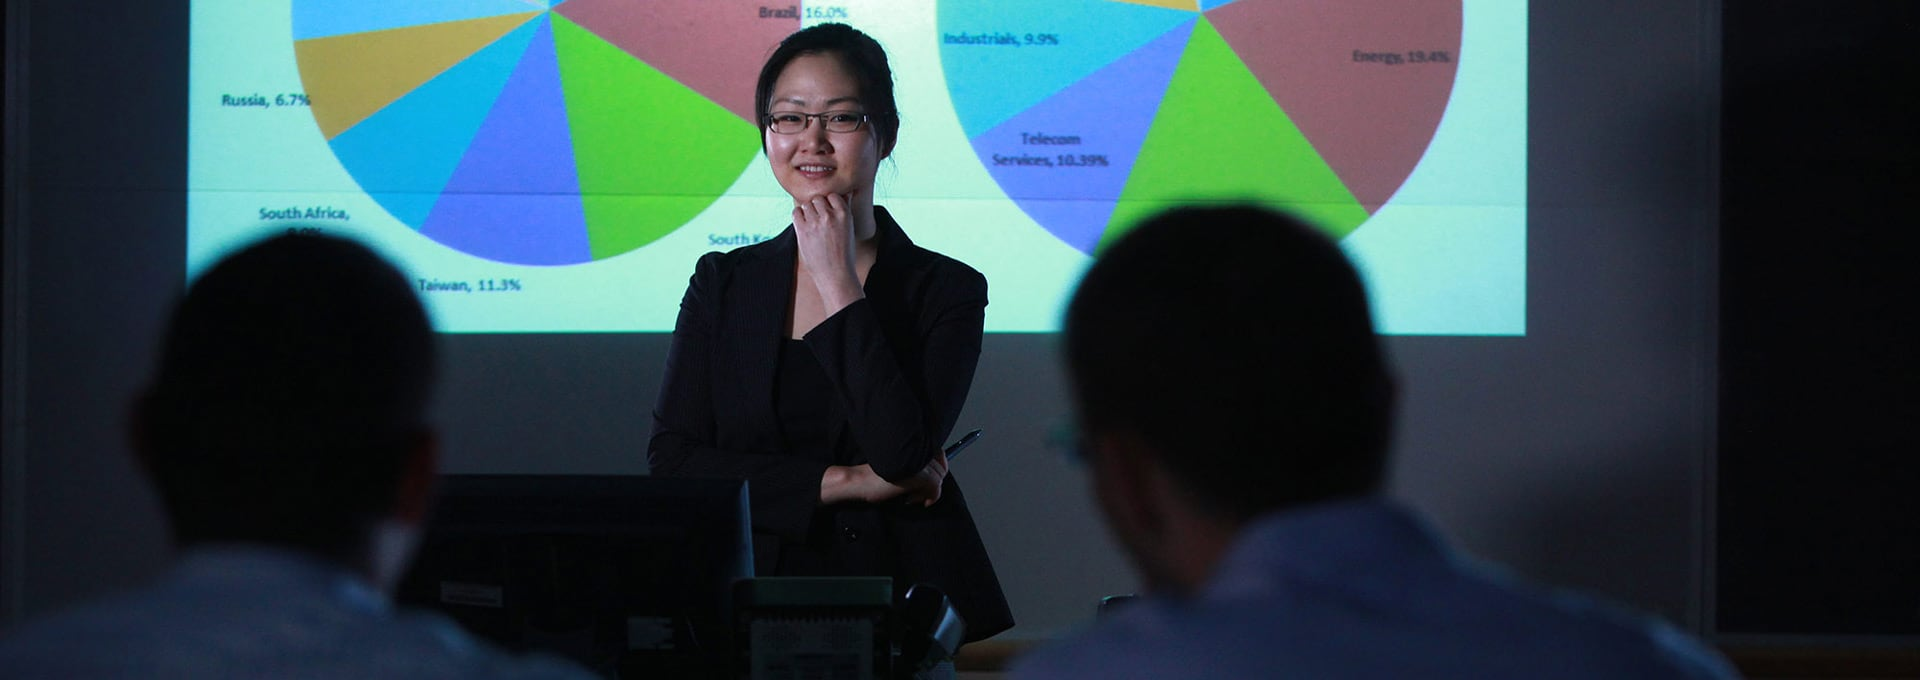 A student makes a presentation before her colleagues